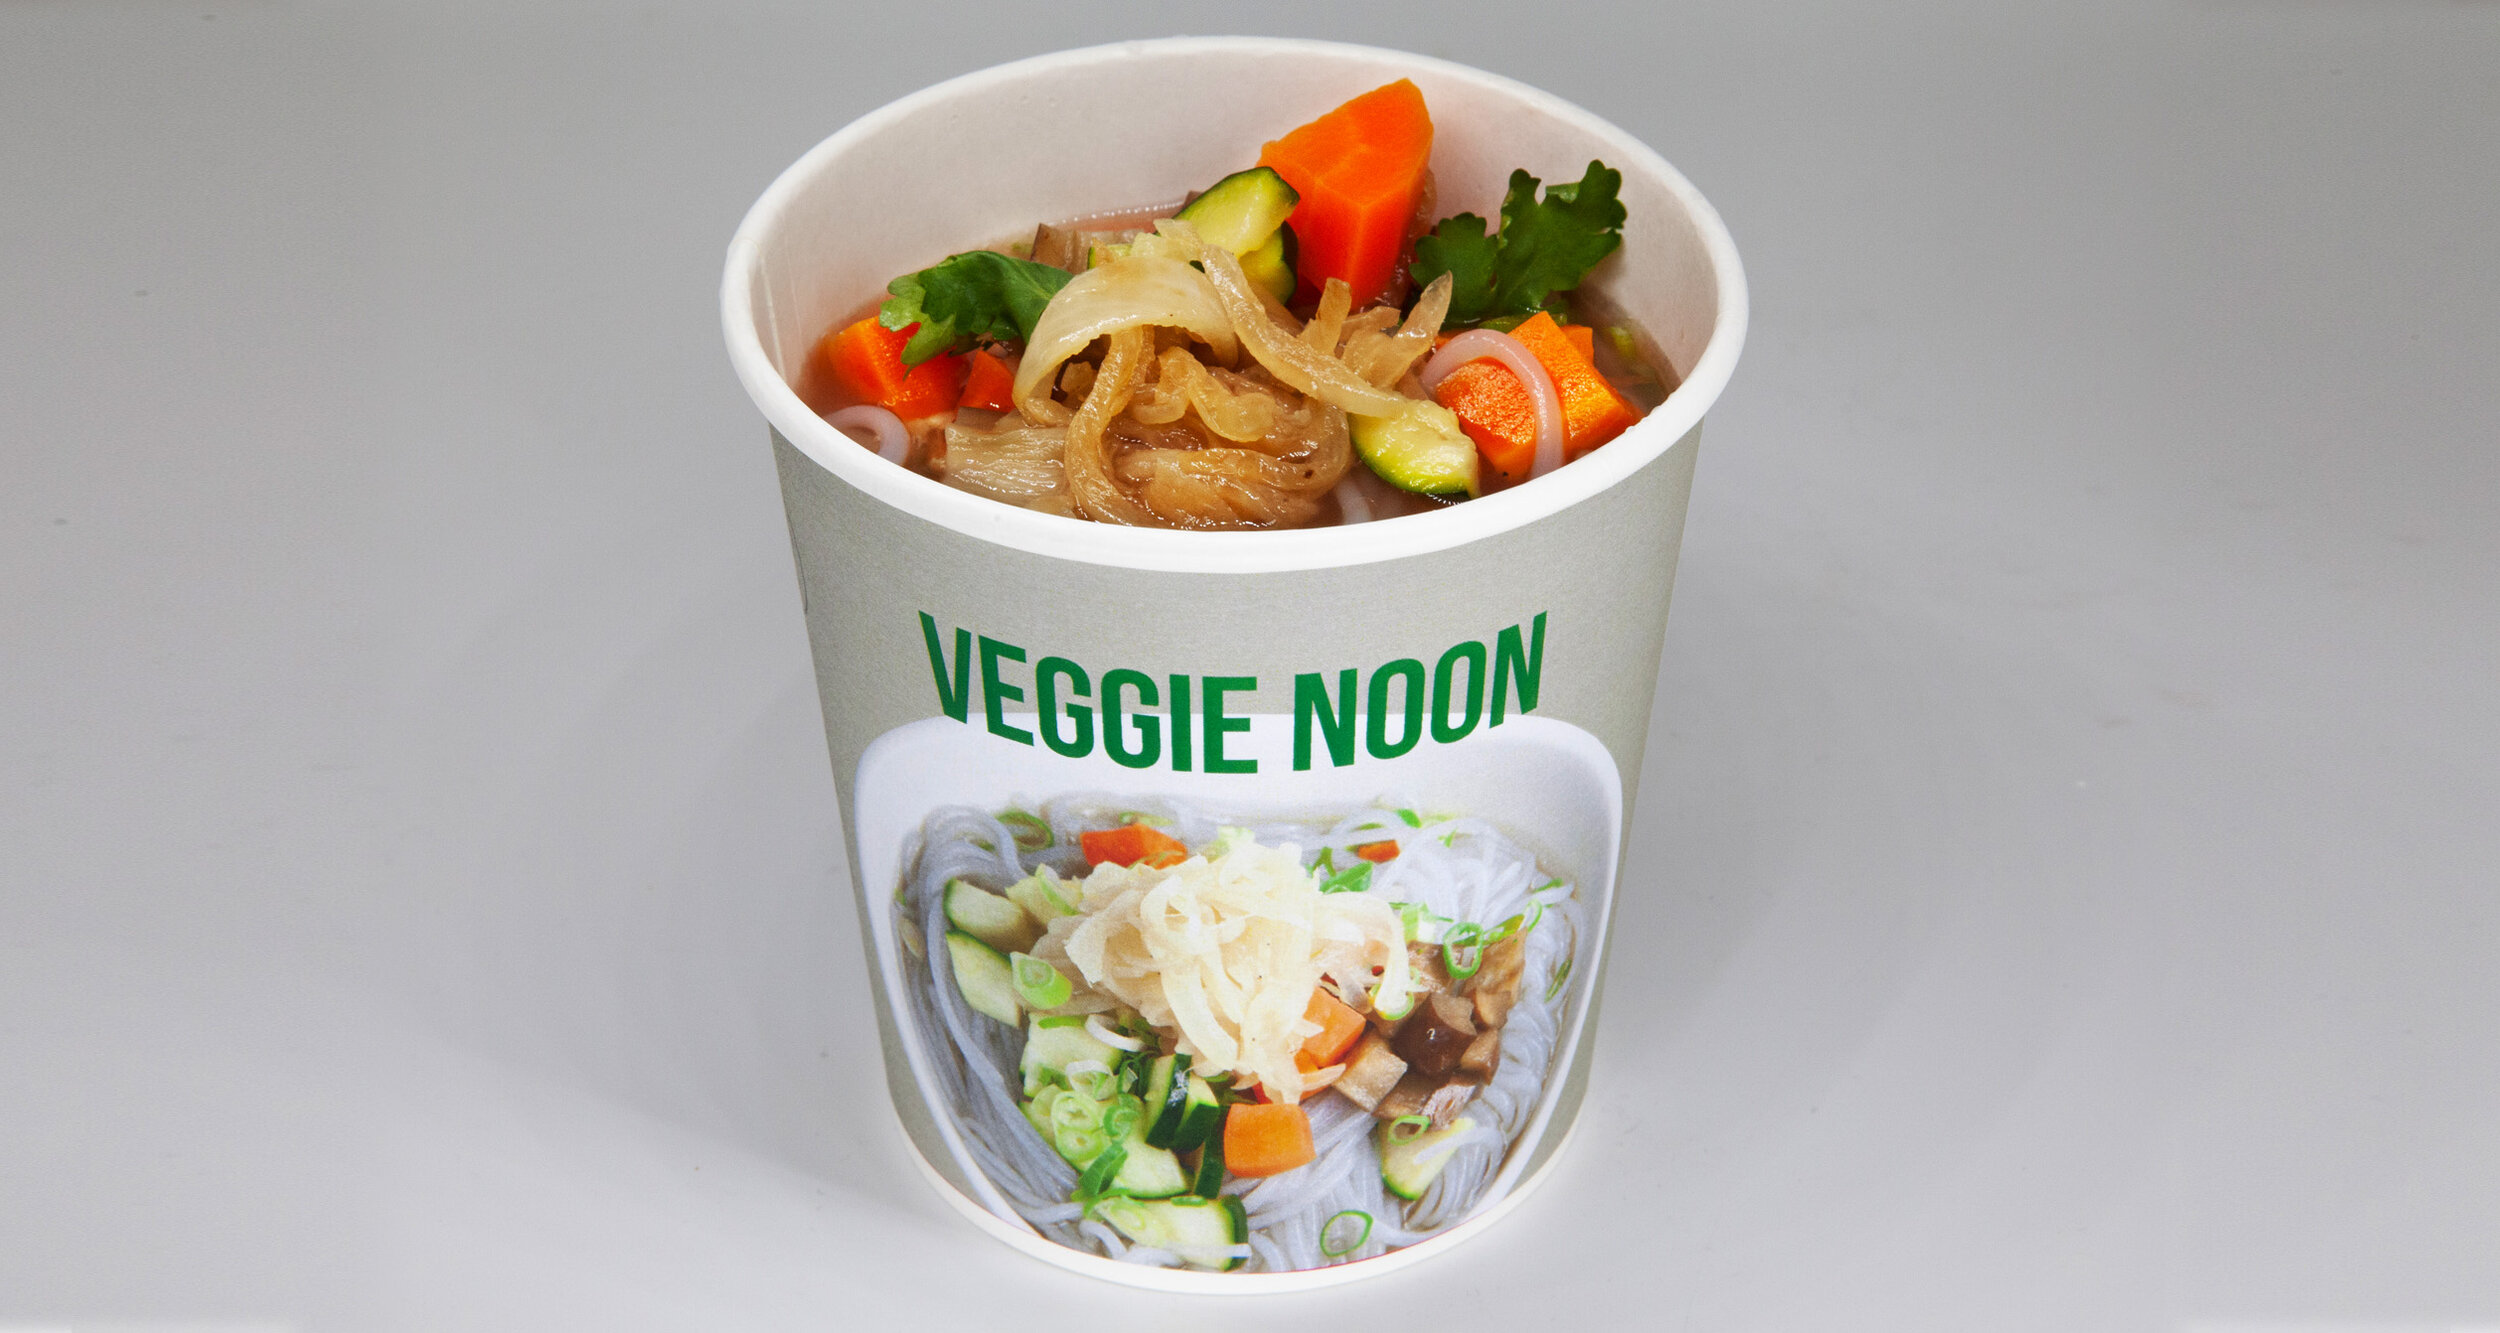 VEGGIE NOON - 50.3 KCAL PER SERVINGVeggie stalk, yam noodle, zucchini, carrot, eggplant, caramelised onion, coriander, green onion$45